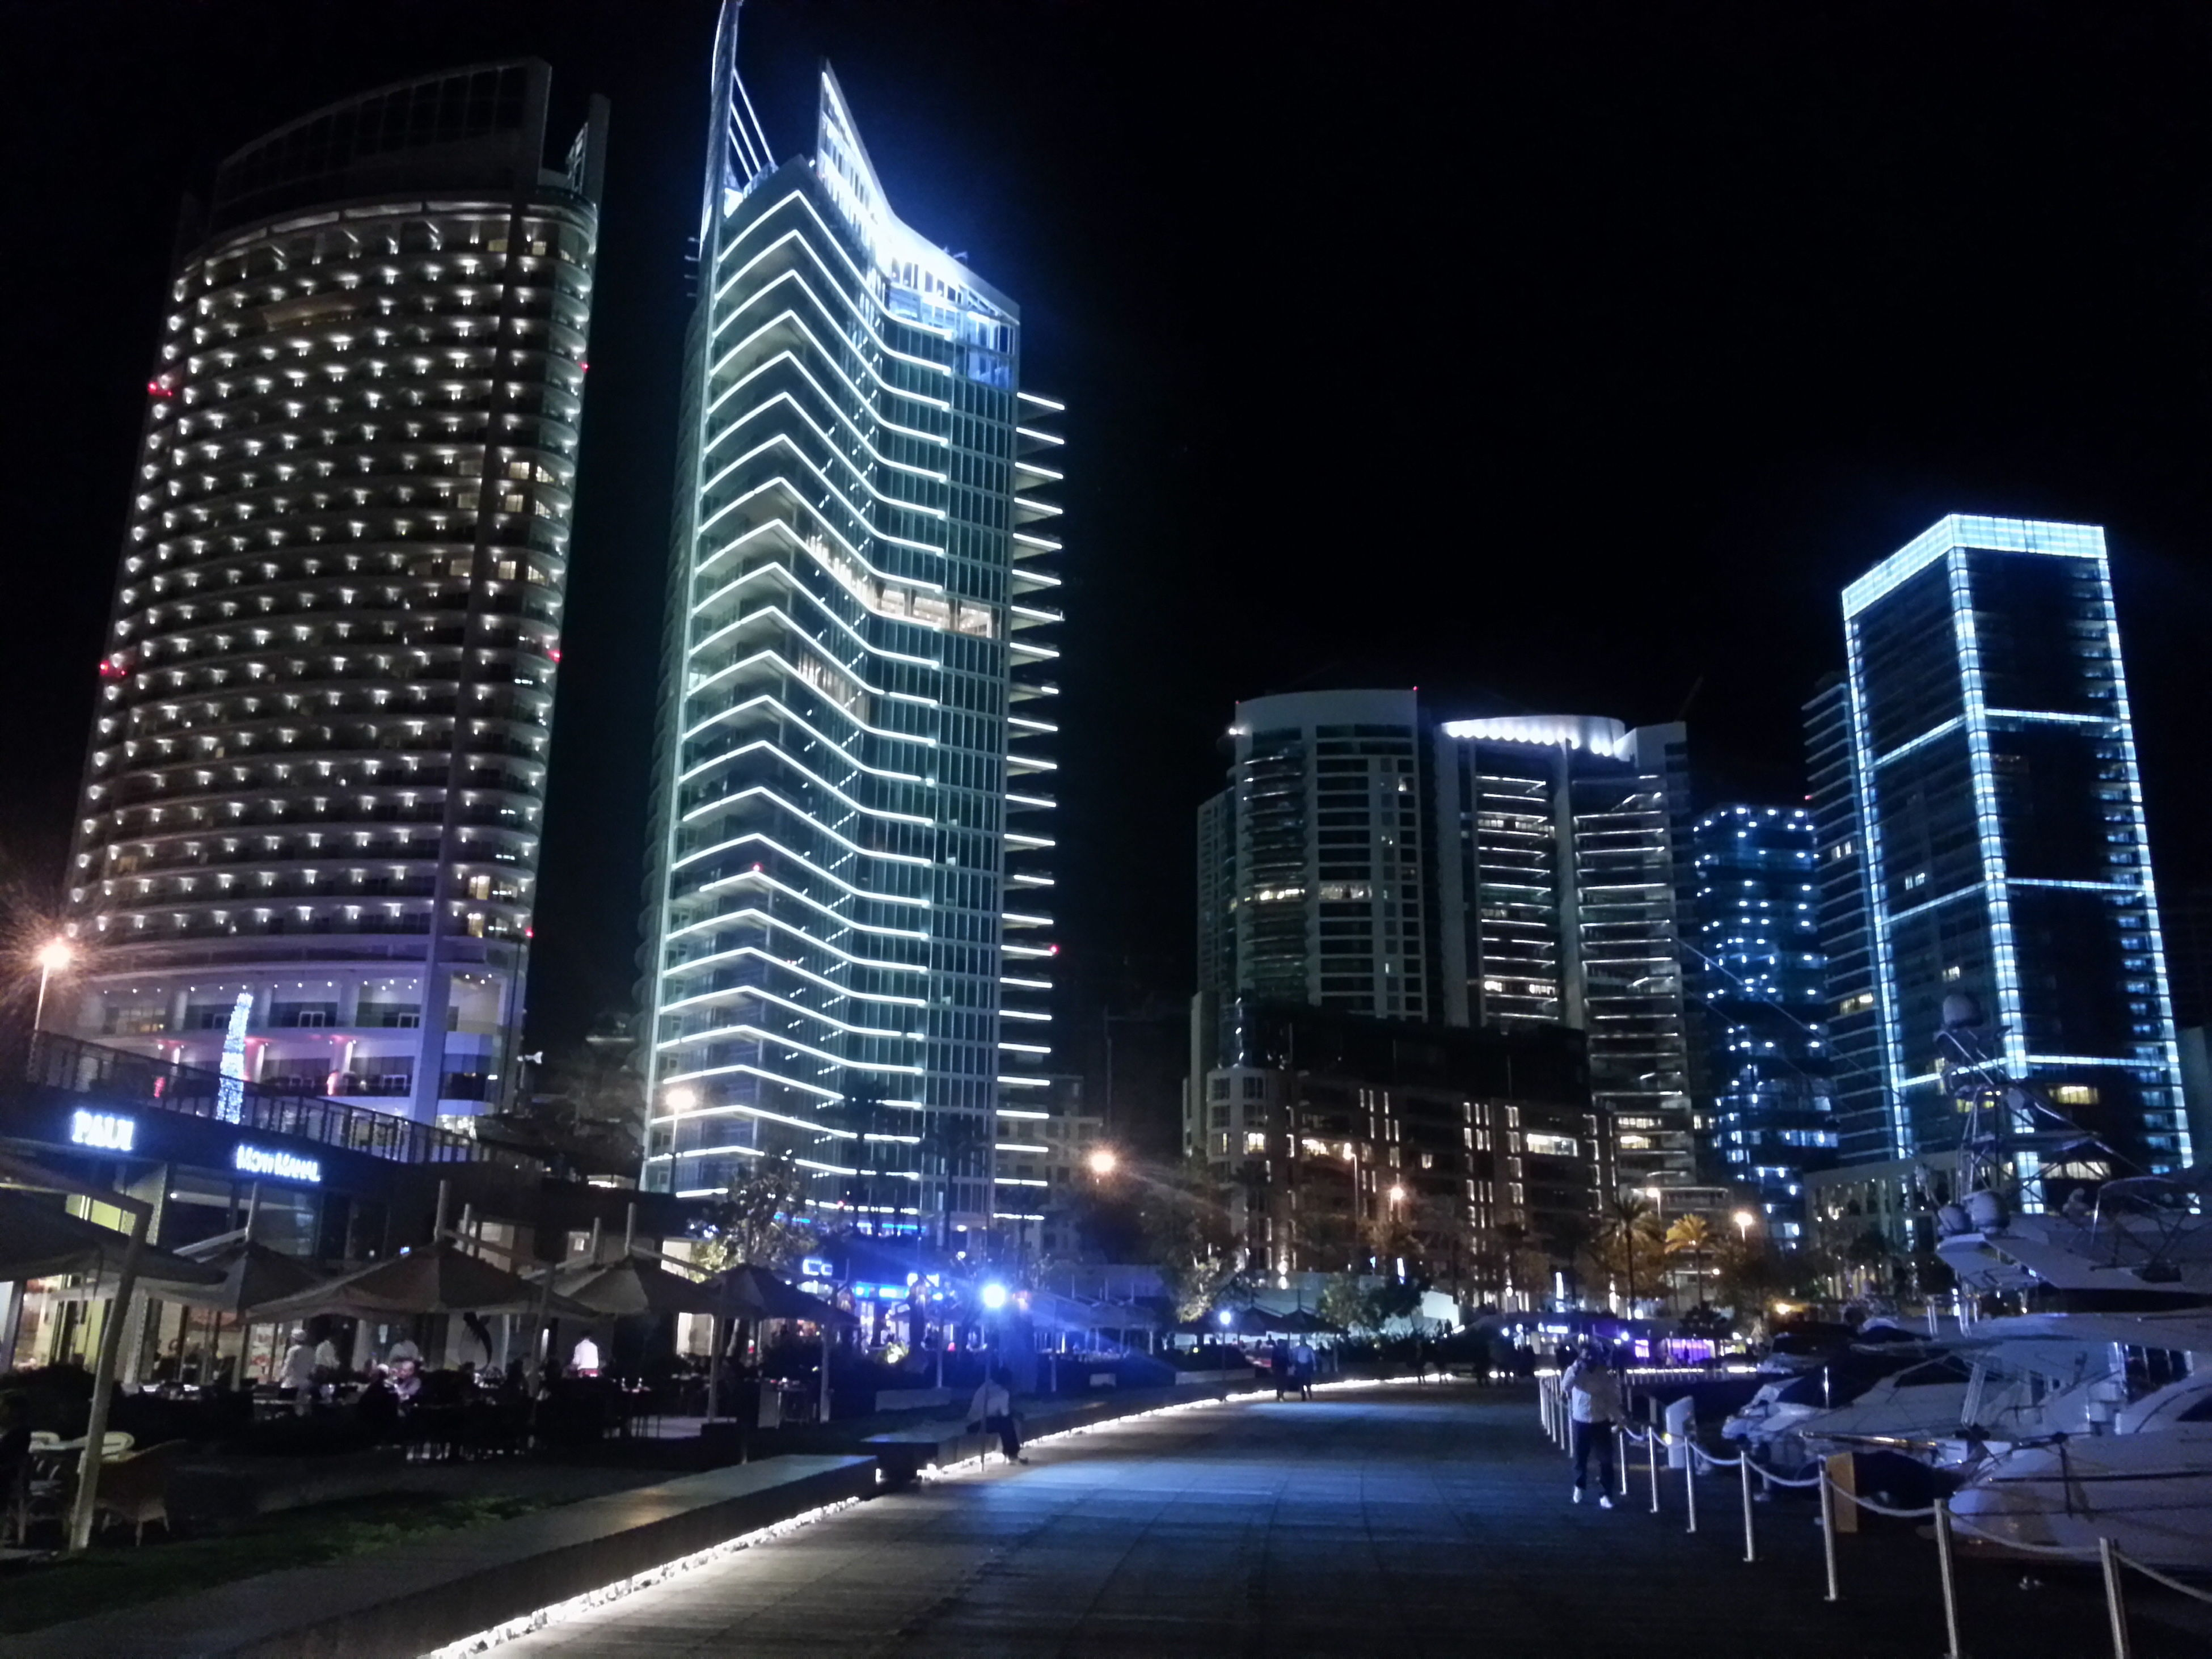 architecture, building exterior, city, built structure, illuminated, skyscraper, night, modern, tall - high, office building, tower, city life, transportation, capital cities, street, the way forward, financial district, building, cityscape, car